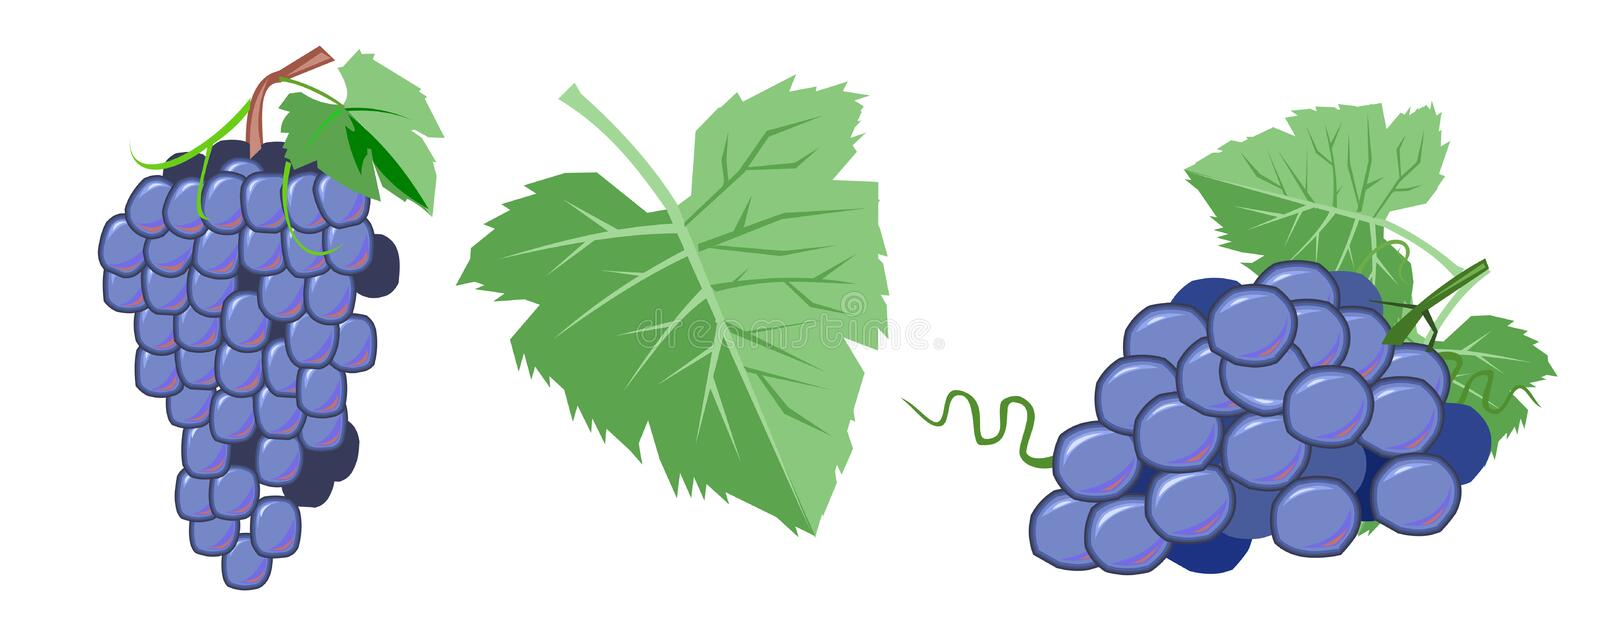 Grapes Vector. Bunches and leaves of grapes in cartoons flat style. Isolated objects on a white background stock illustration